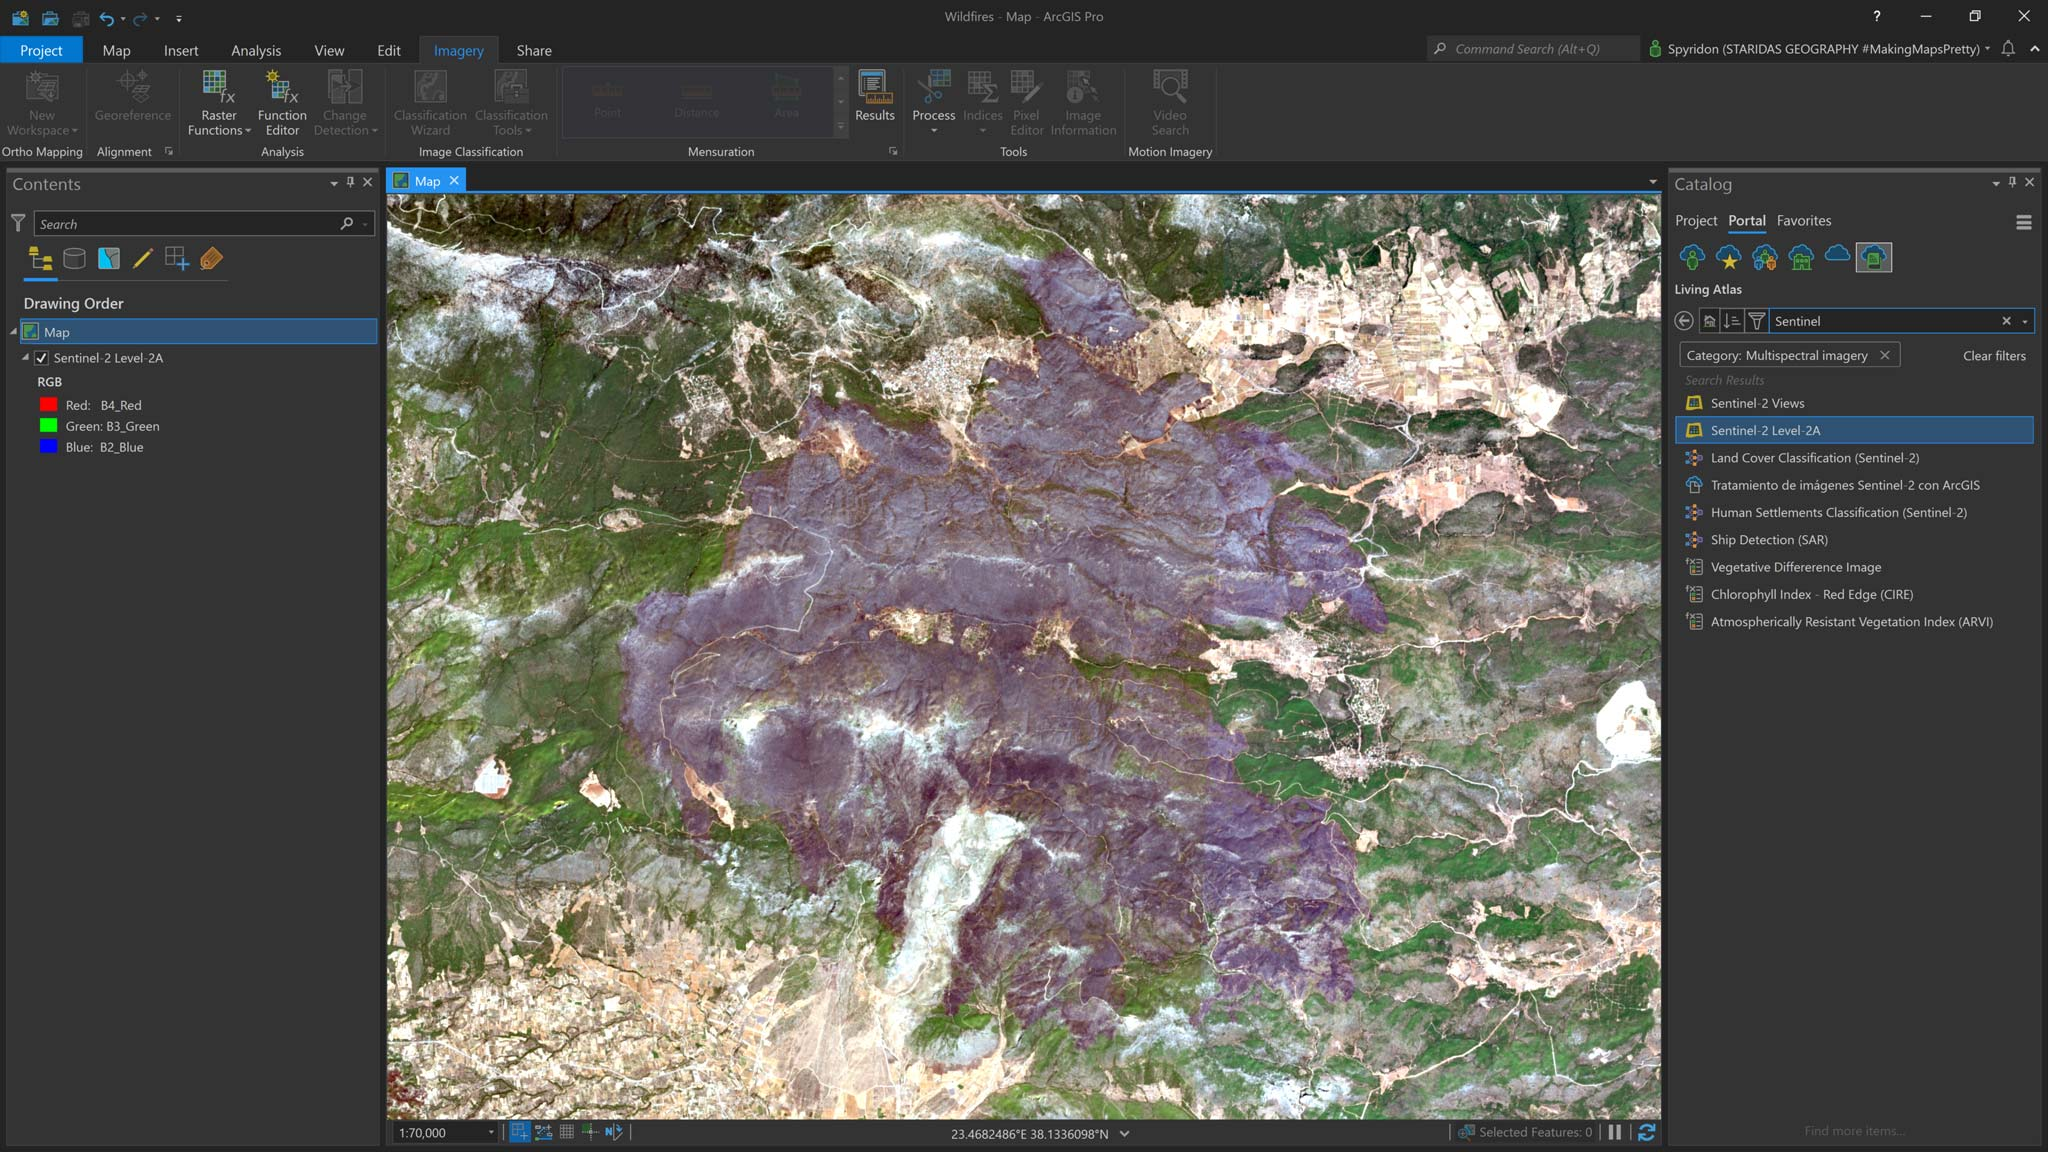 Picture 1: The burn scar at Vilia area captured by Sentinel-2.